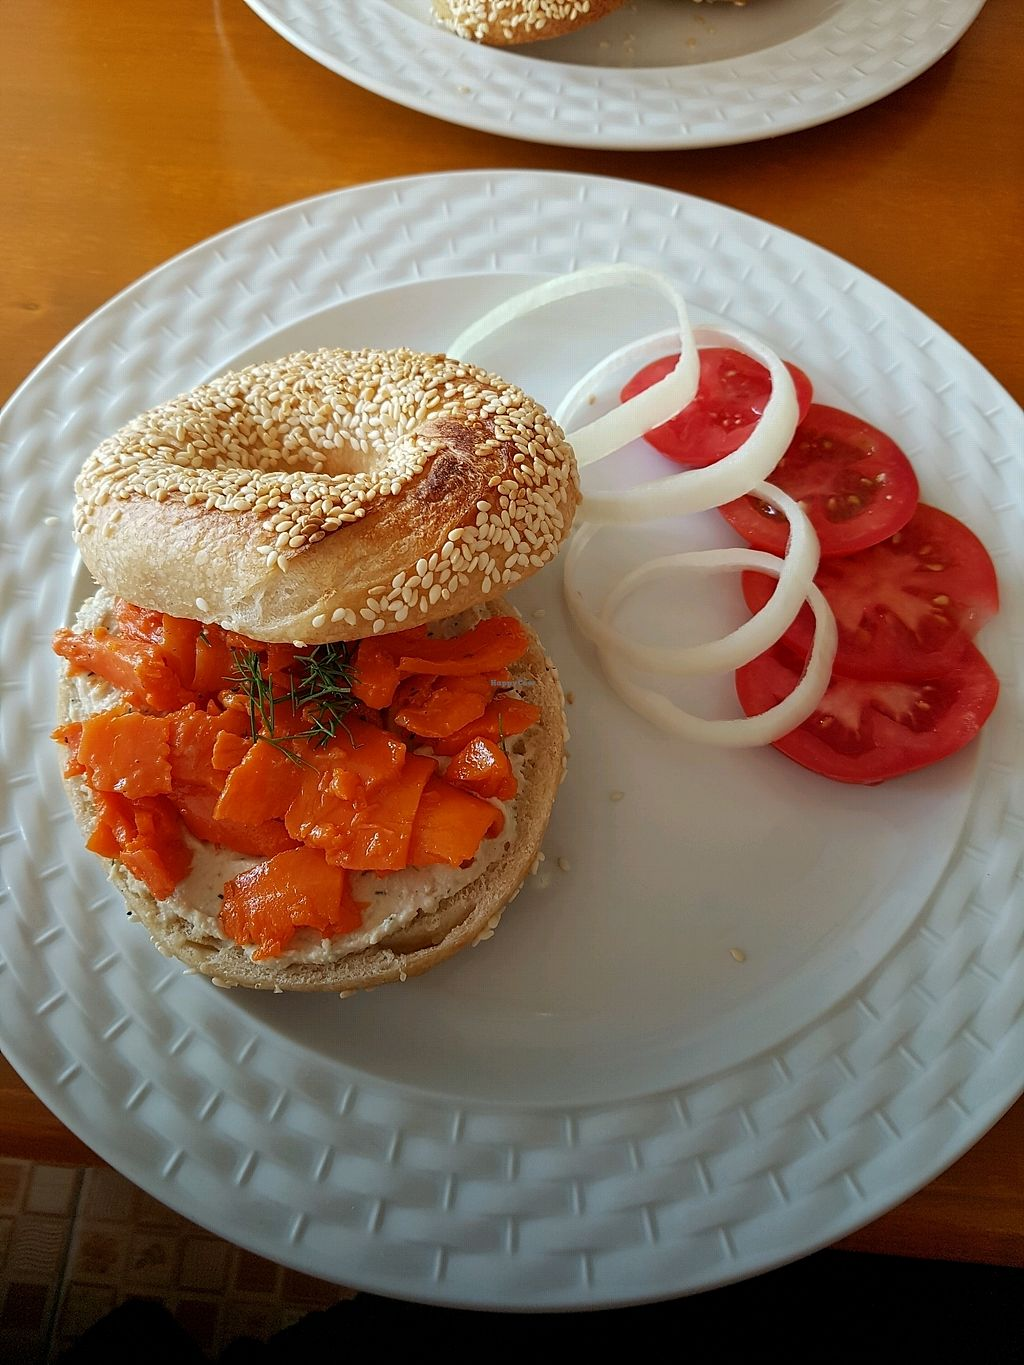 """Photo of Big Apple Bakery - temporarily closed  by <a href=""""/members/profile/Carrothuntress"""">Carrothuntress</a> <br/>Vegan Salmonbagel with creamed cheese <br/> December 28, 2017  - <a href='/contact/abuse/image/106340/339845'>Report</a>"""